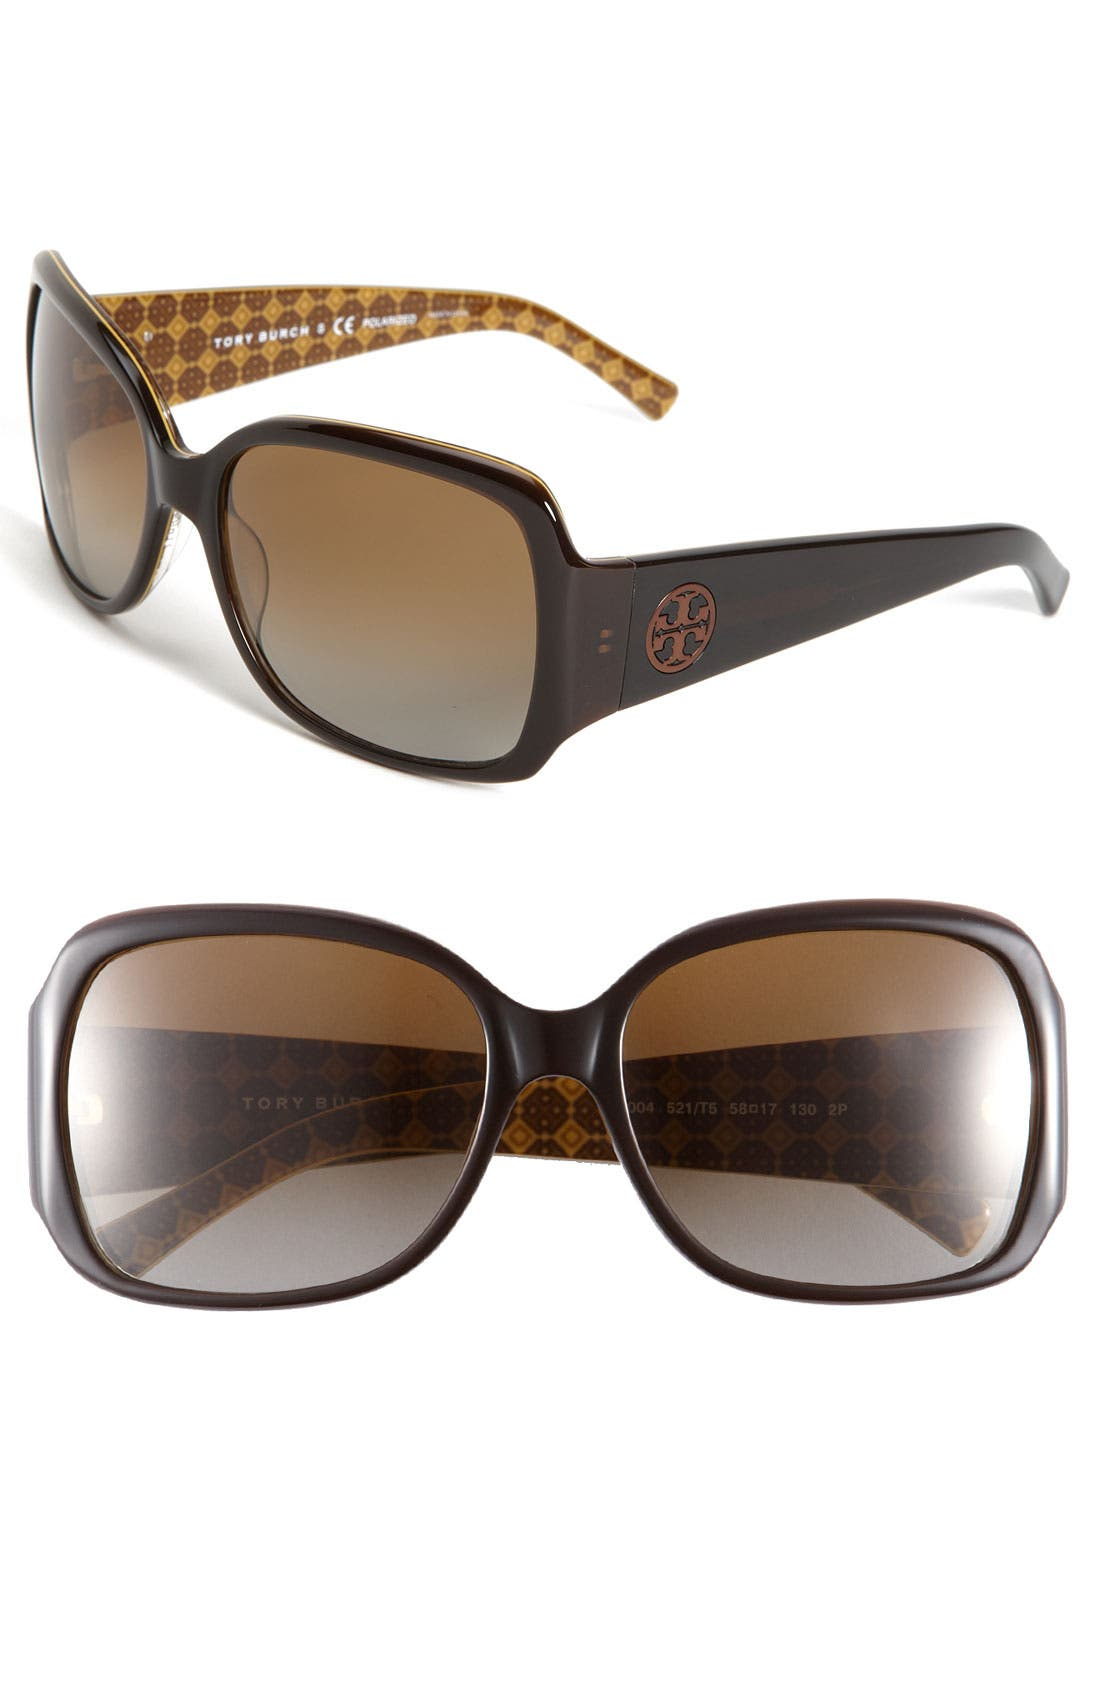 Main Image - Tory Burch Polarized Square Sunglasses